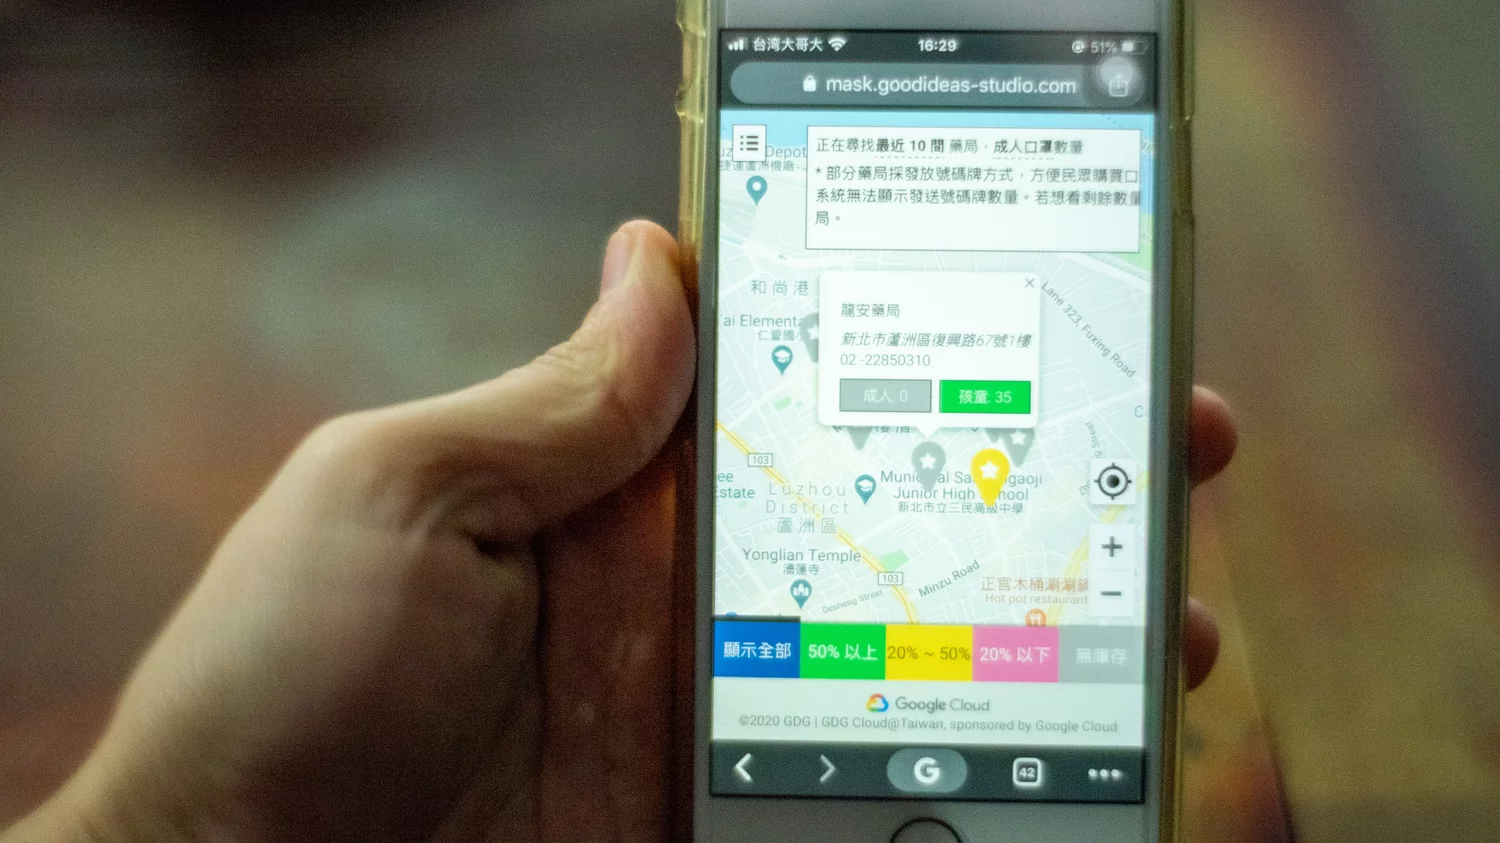 finding a mask in Taiwan, maps during COVID